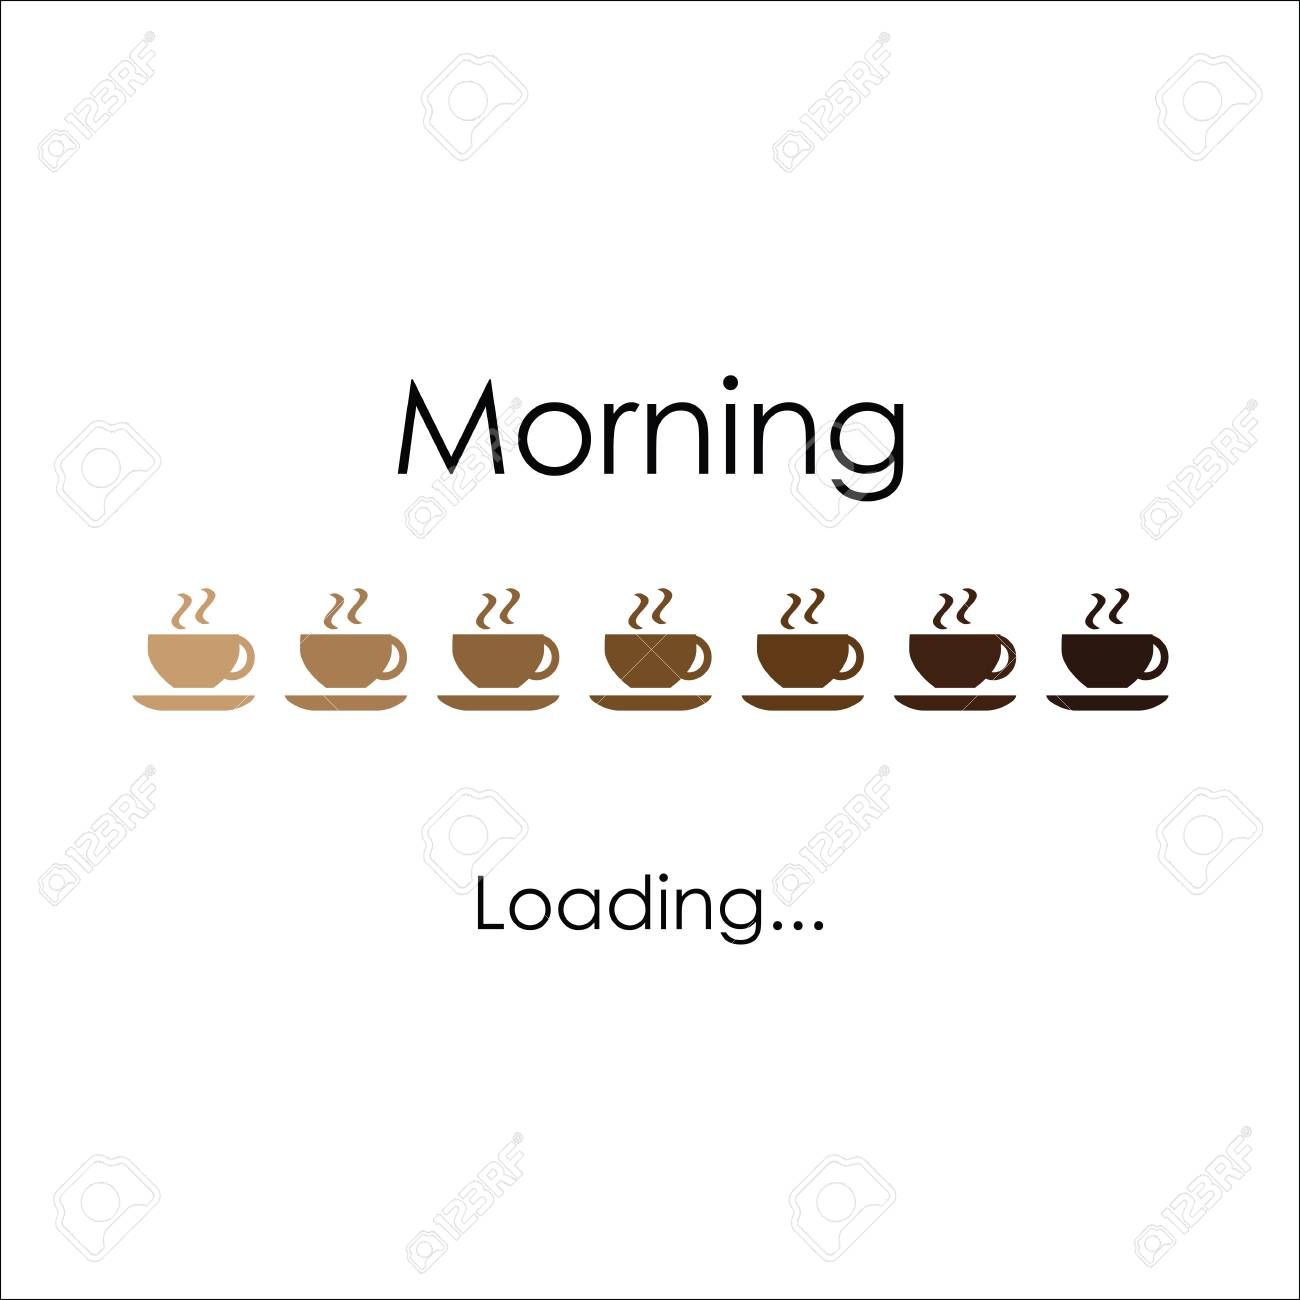 Morning with coffee, vector art for banner, poster, crad. Loading coffee lettering - 87062368